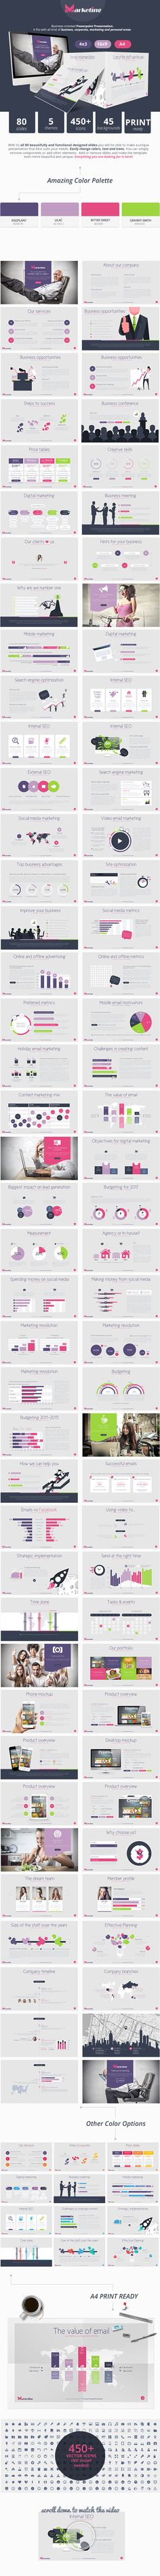 72 best academic poster images on Pinterest | Academic poster ...